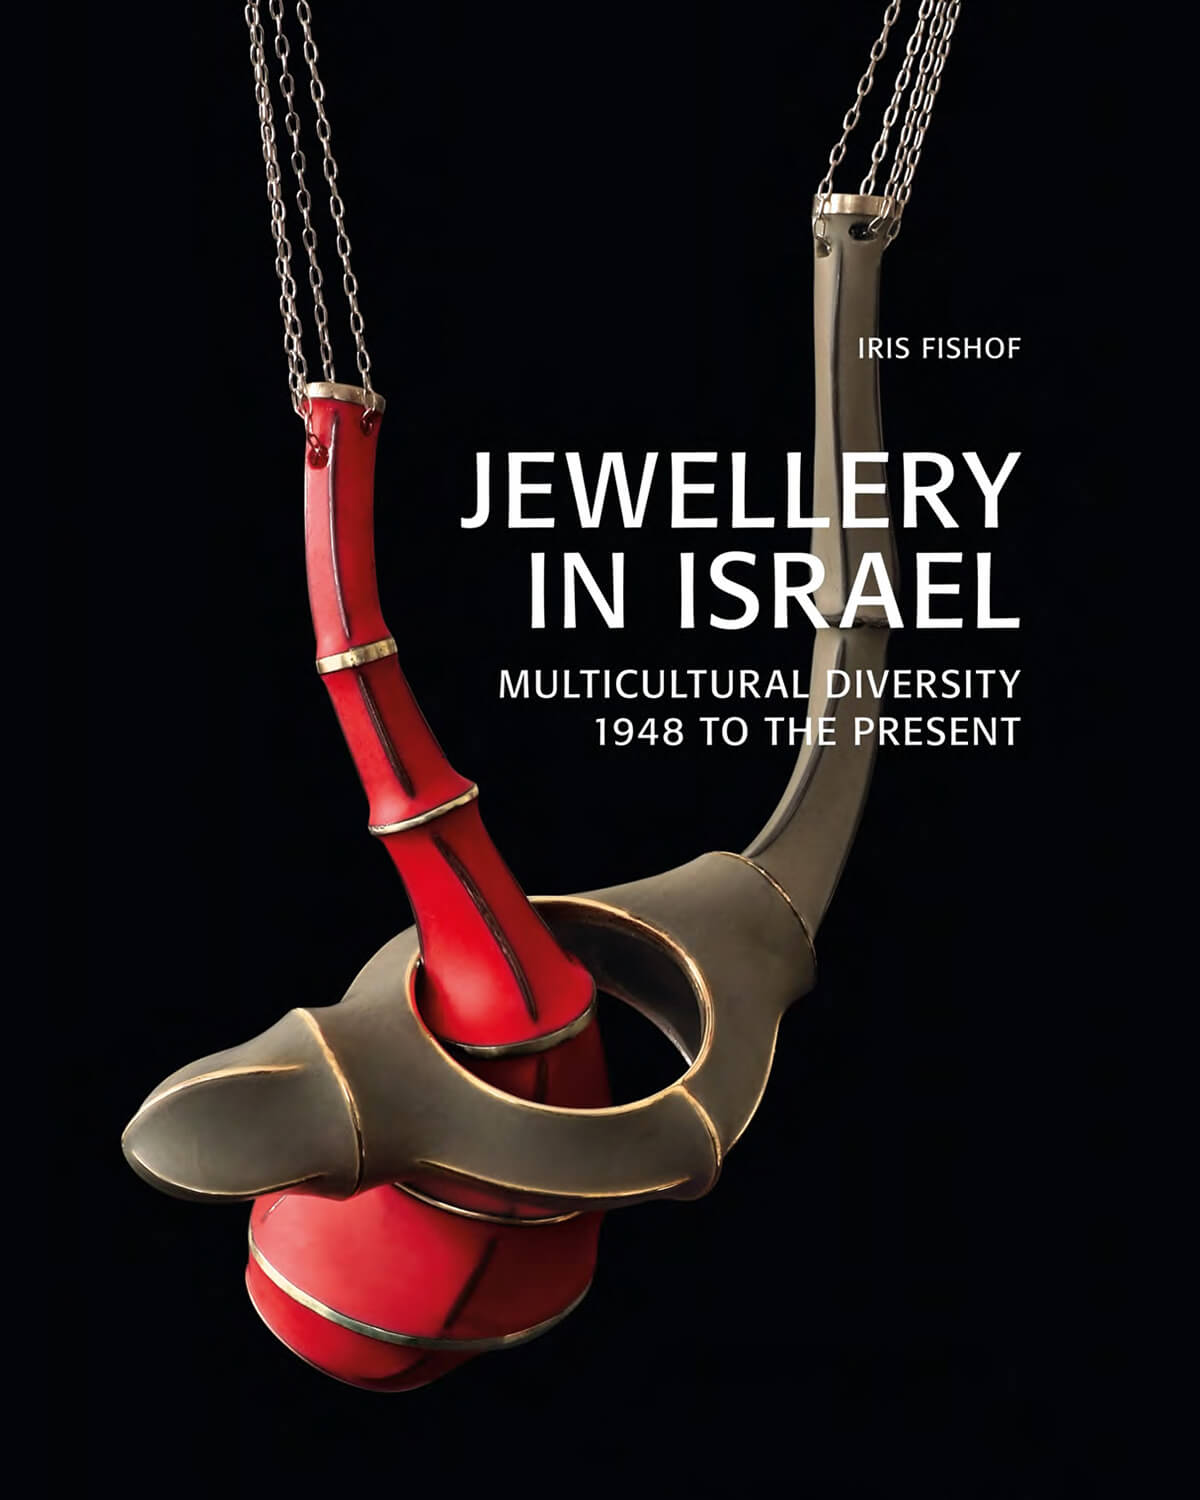 Israel jewelry in Israel multicultural diversity 1948 to the present - cover